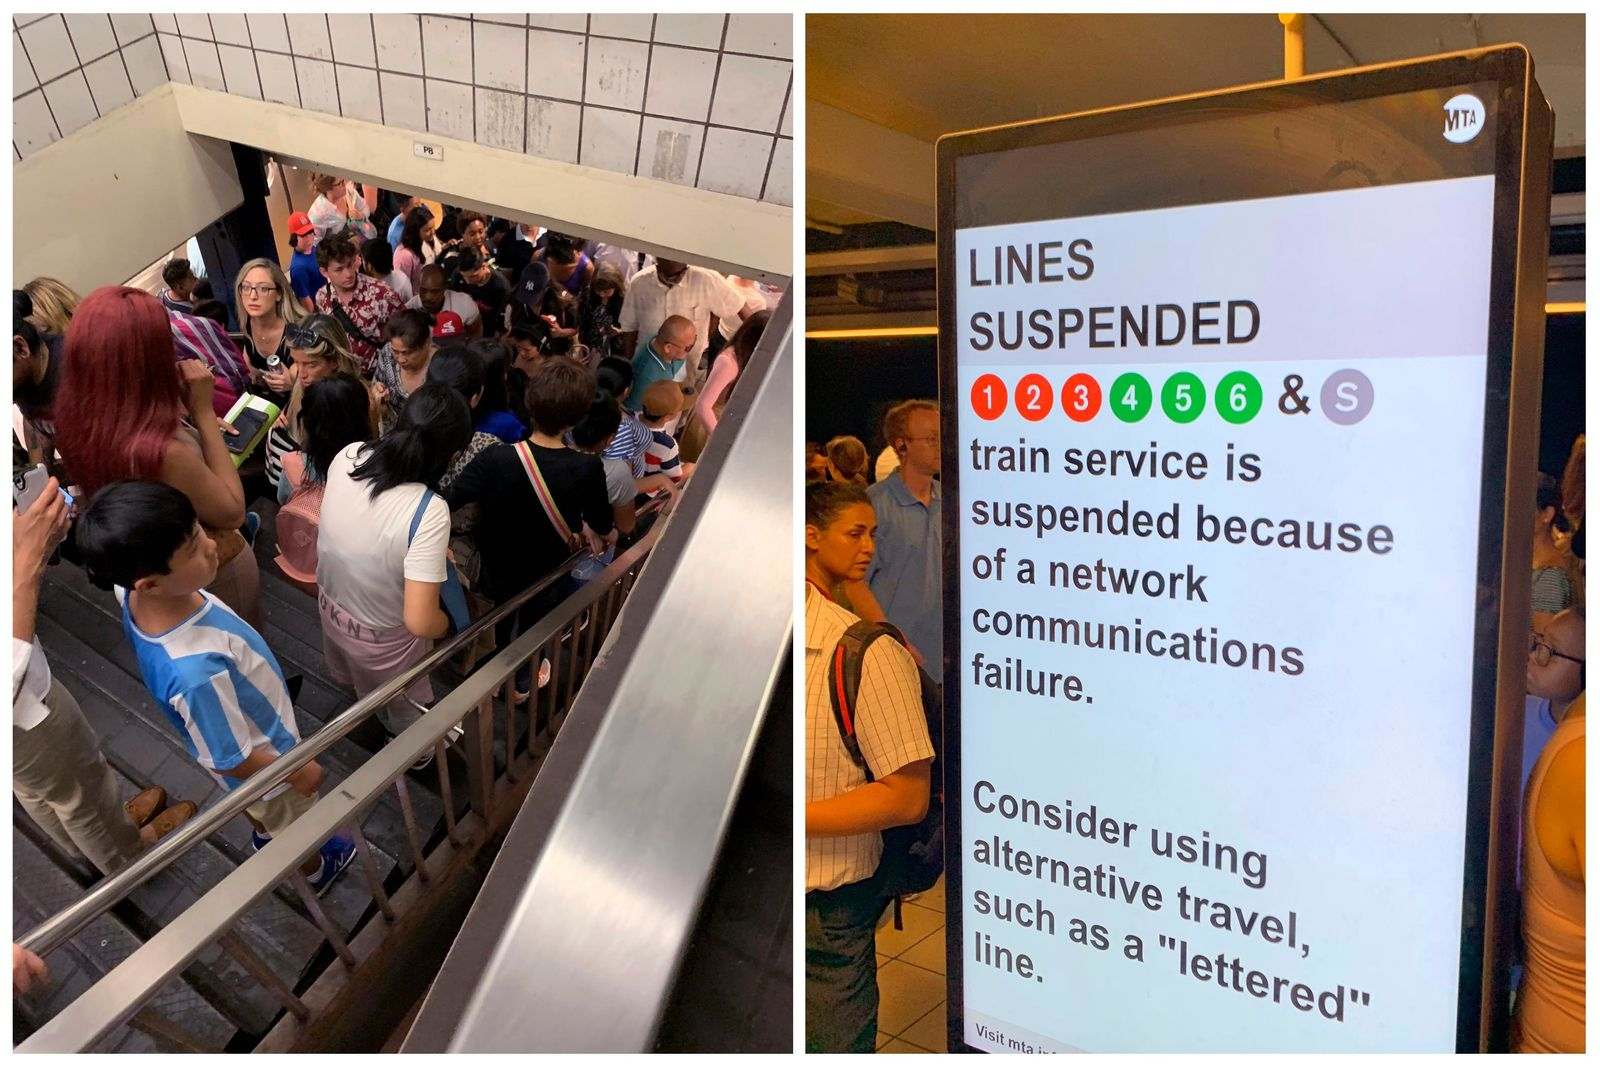 In this photo combo of images provided by Kenneth Ferrone, commuters fill the stairs and line the platform at a New York City subway station, at left, and a digital sign on a New York City subway platform warns commuters of a service disruption on several lines, Friday, July 19, 2019, in New York. (Kenneth Ferrone via AP)